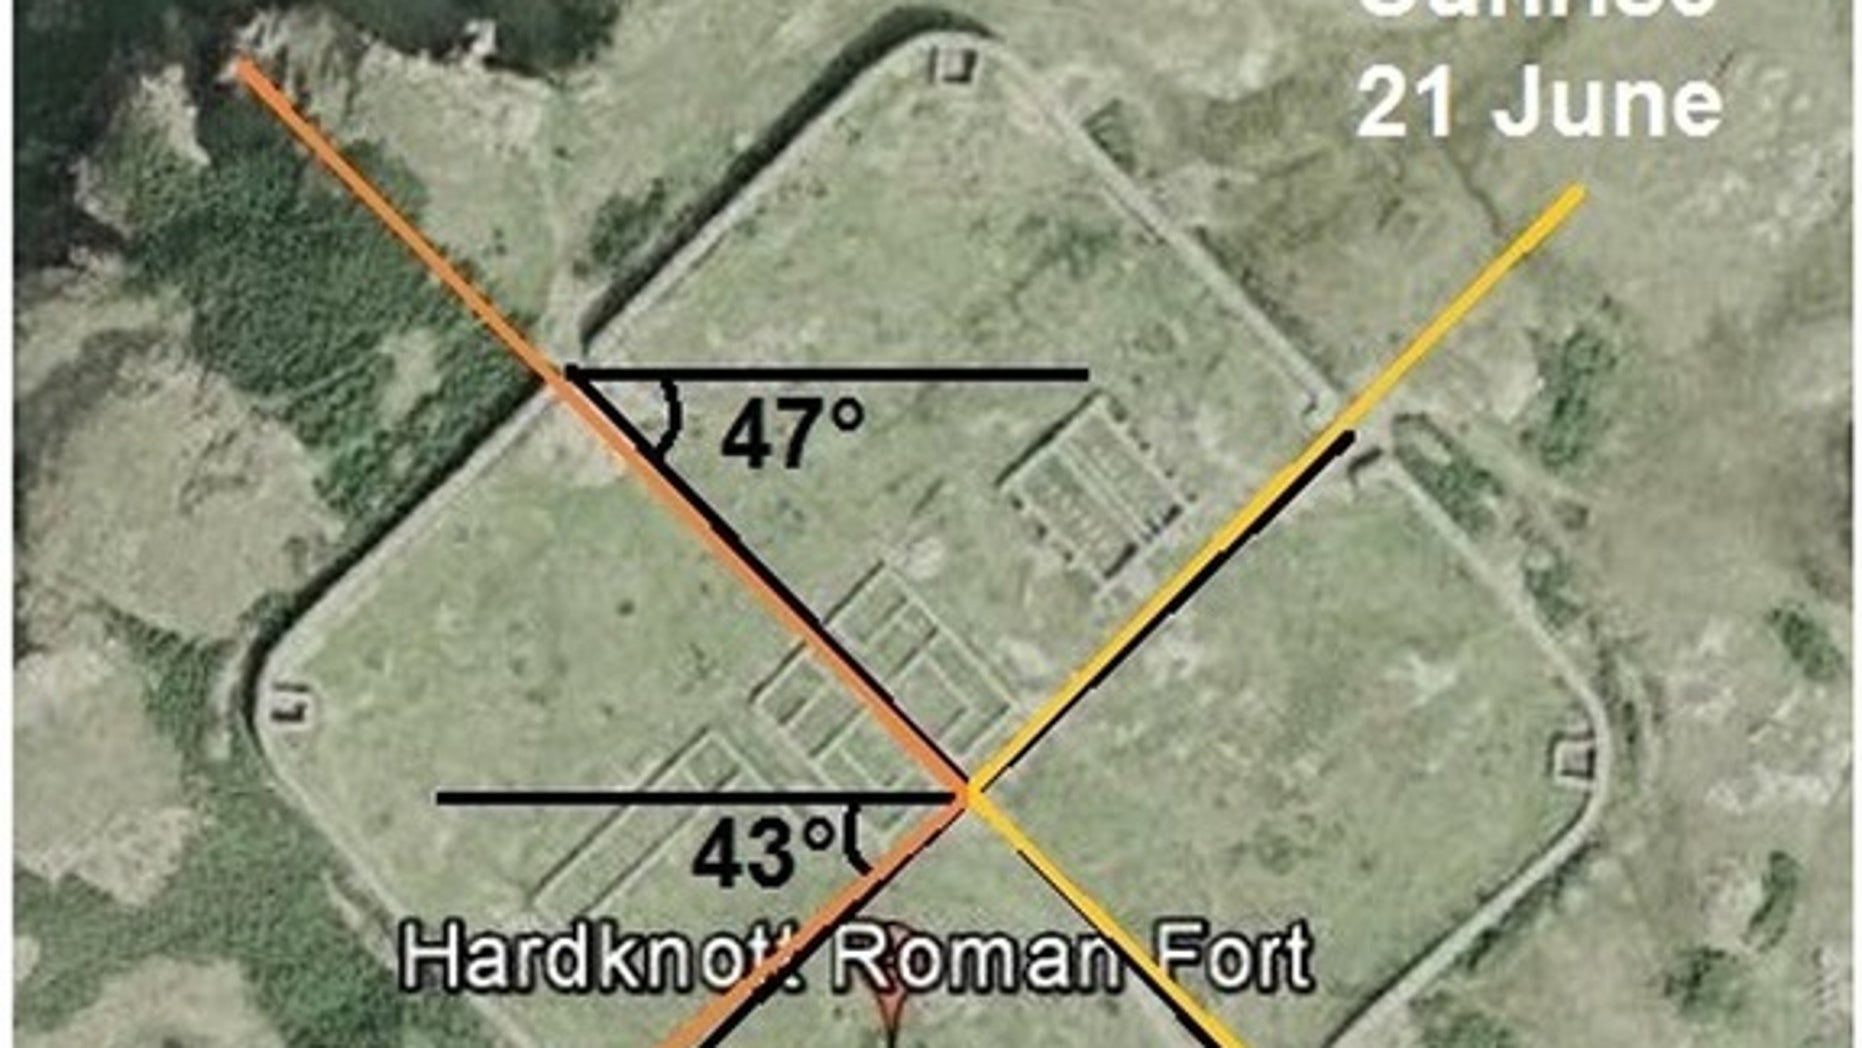 The ruins of the Roman fort in Britain by Hardknott Pass are roughly aligned with the light of the solstice sun.